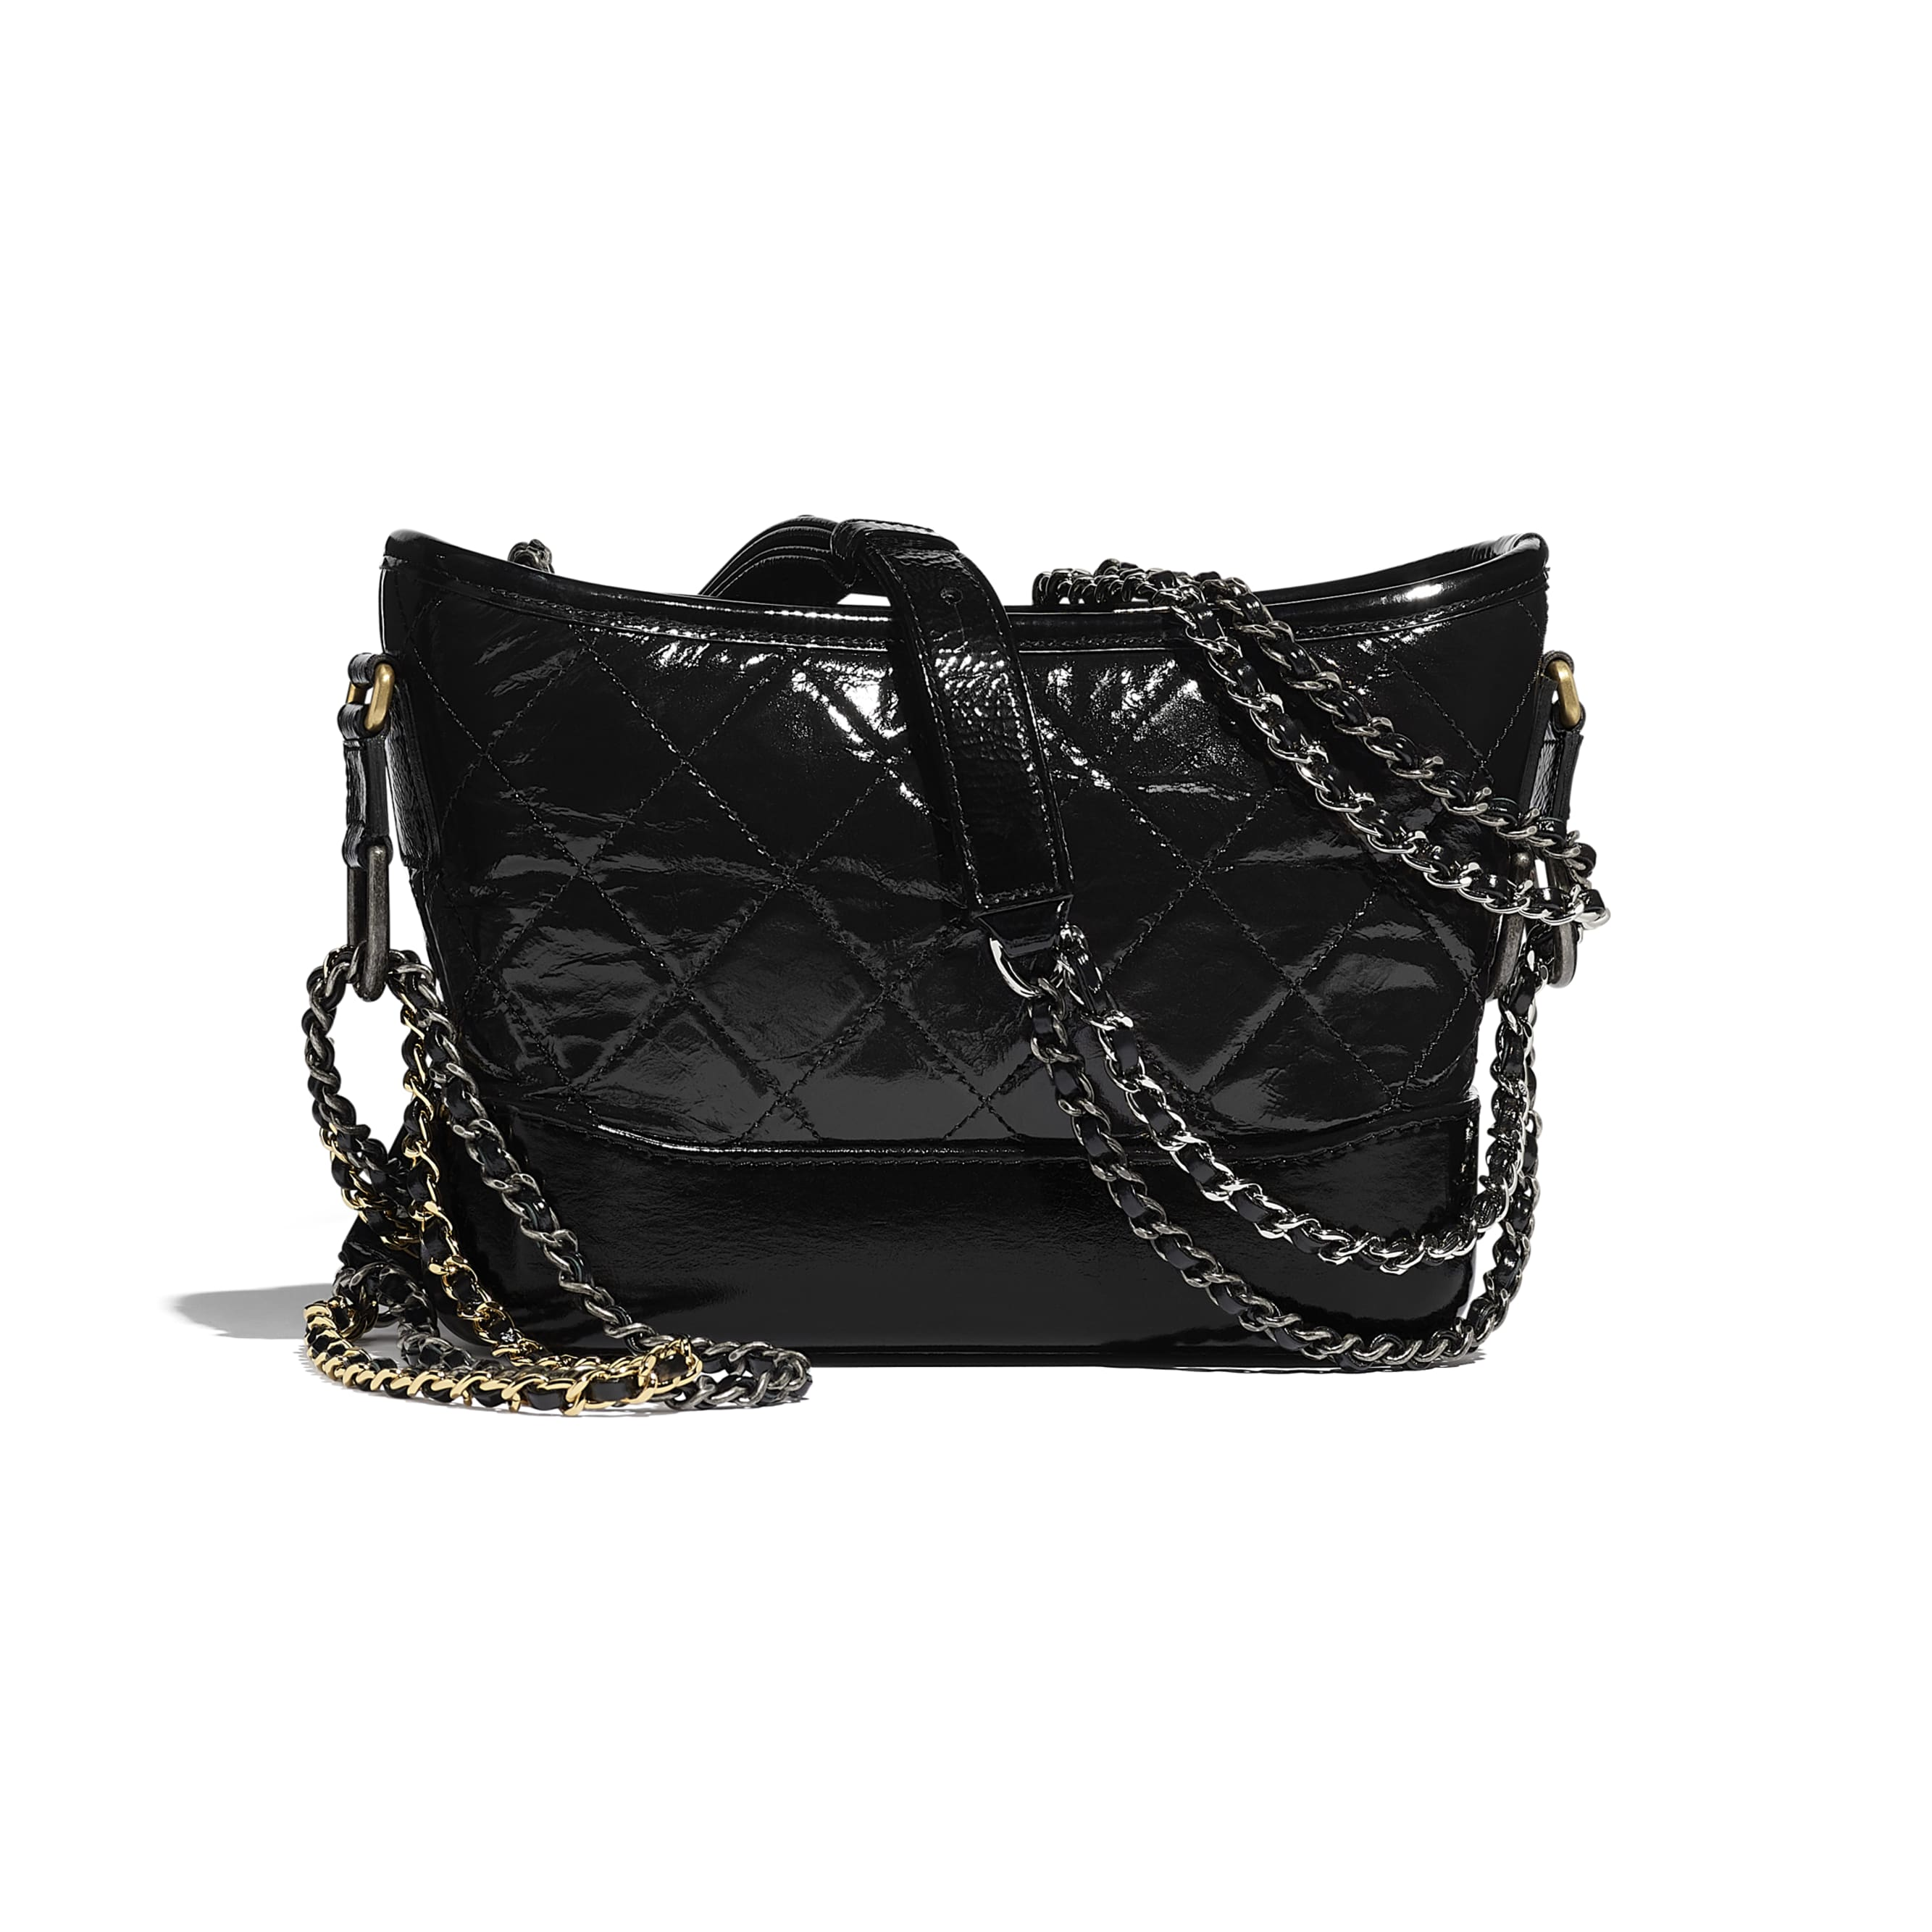 CHANEL'S GABRIELLE Small Hobo Bag - Black - Aged Calfskin, Smooth Calfskin, Gold-Tone, Silver-Tone & Ruthenium-Finish Metal - CHANEL - Alternative view - see standard sized version